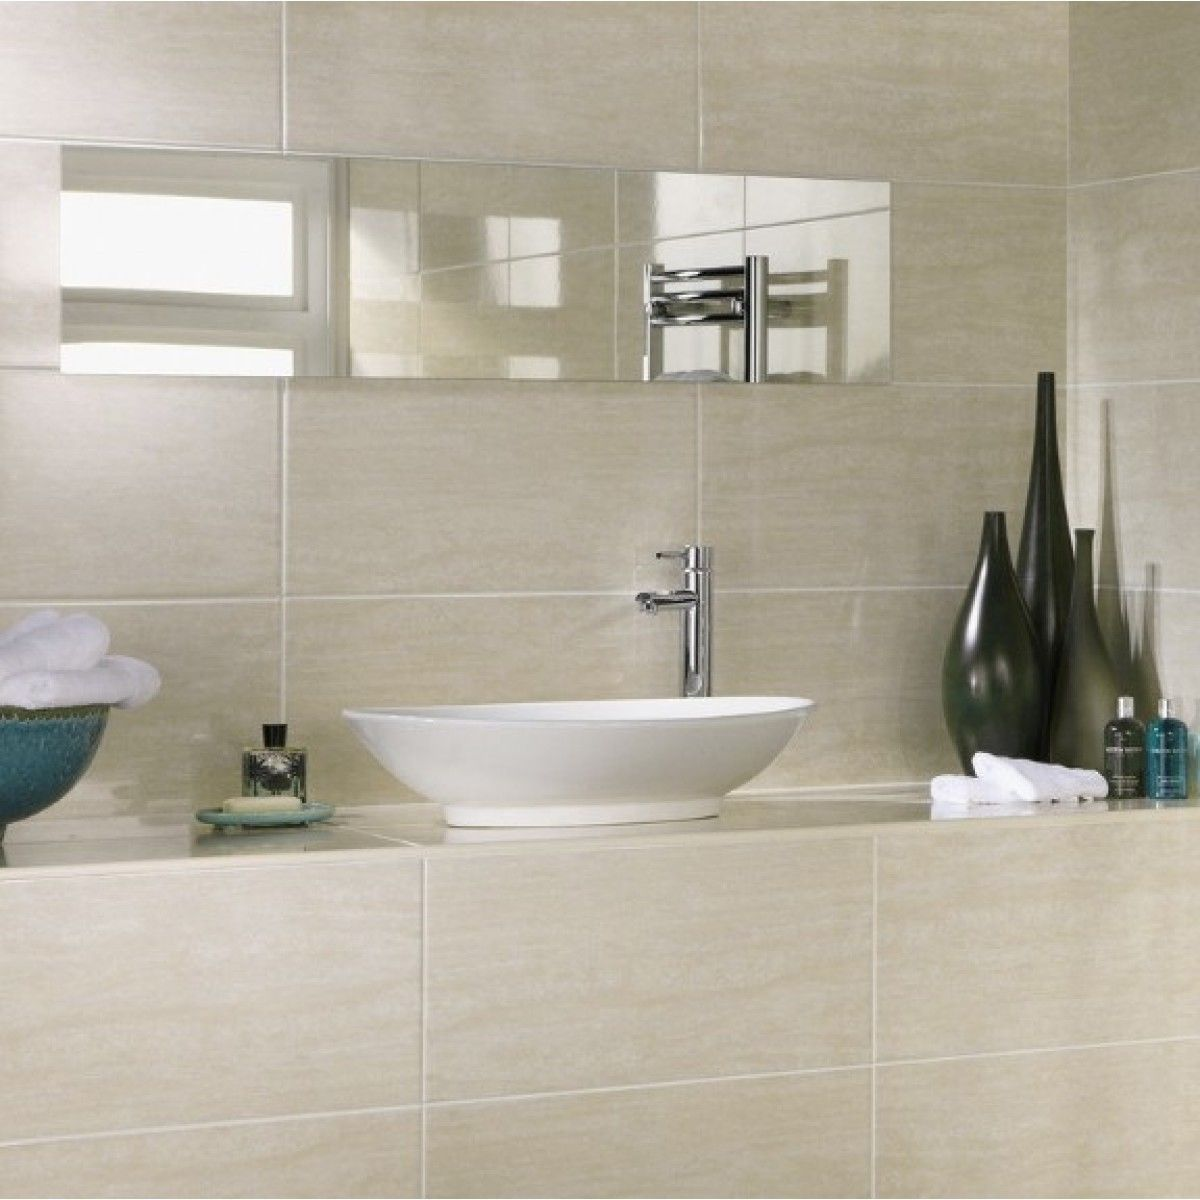 This Is Why We Always Recommend Viewing A Sample First 60x3 0 Cm Beige Matt Ceramic Bathroom X2f Kitchen Wall Tiles Over Time Wall And Floor Tiles Can Hogar